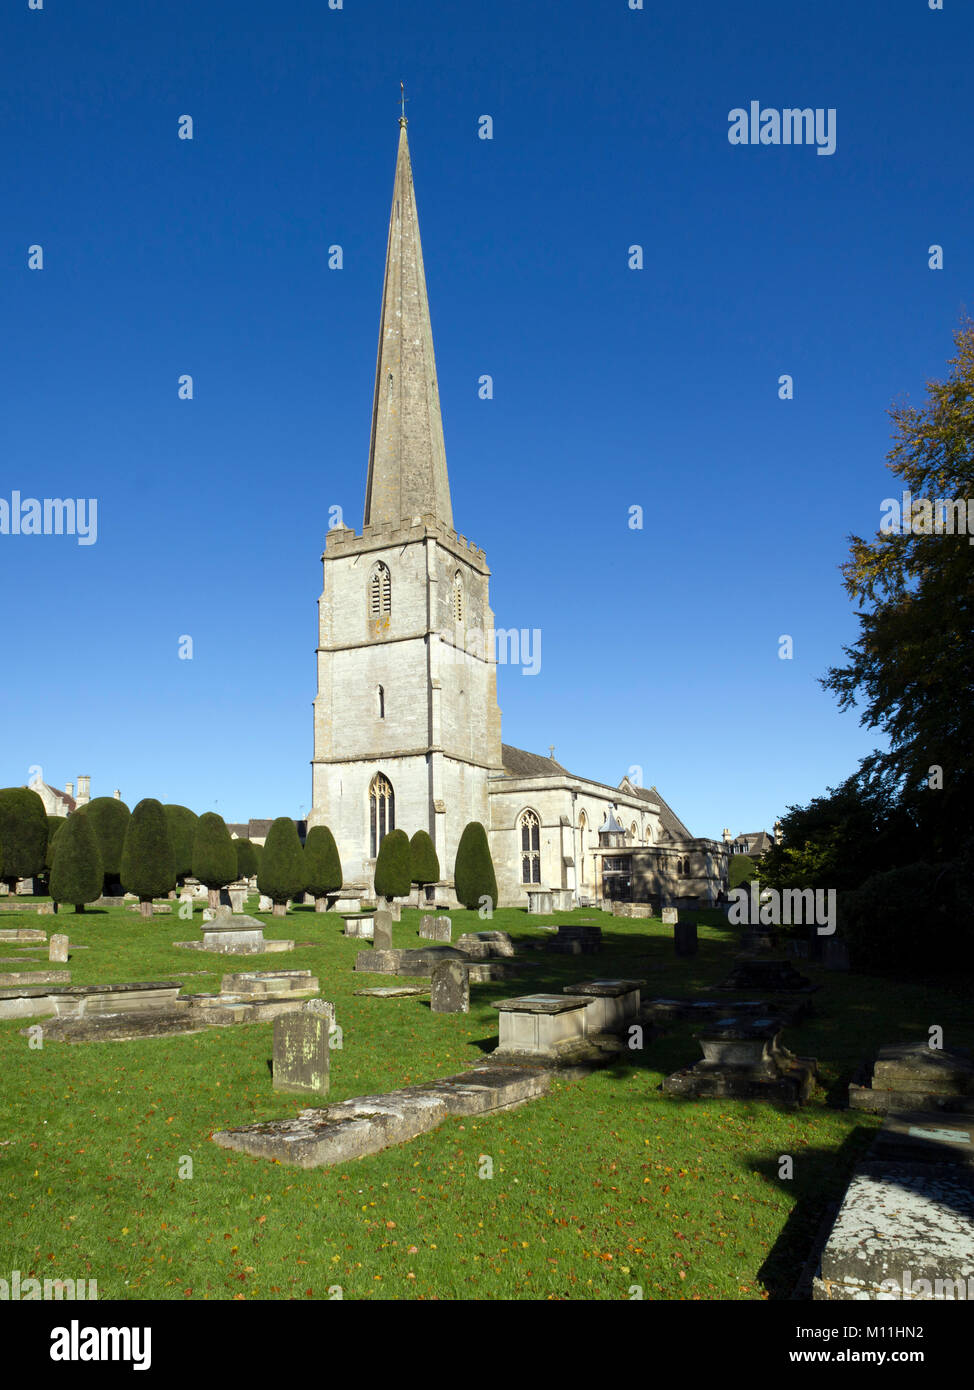 The historic church and churchyard yew trees at Painswick in the Cotswolds, Gloucestershire, UK. Wide-angle composite - Stock Image